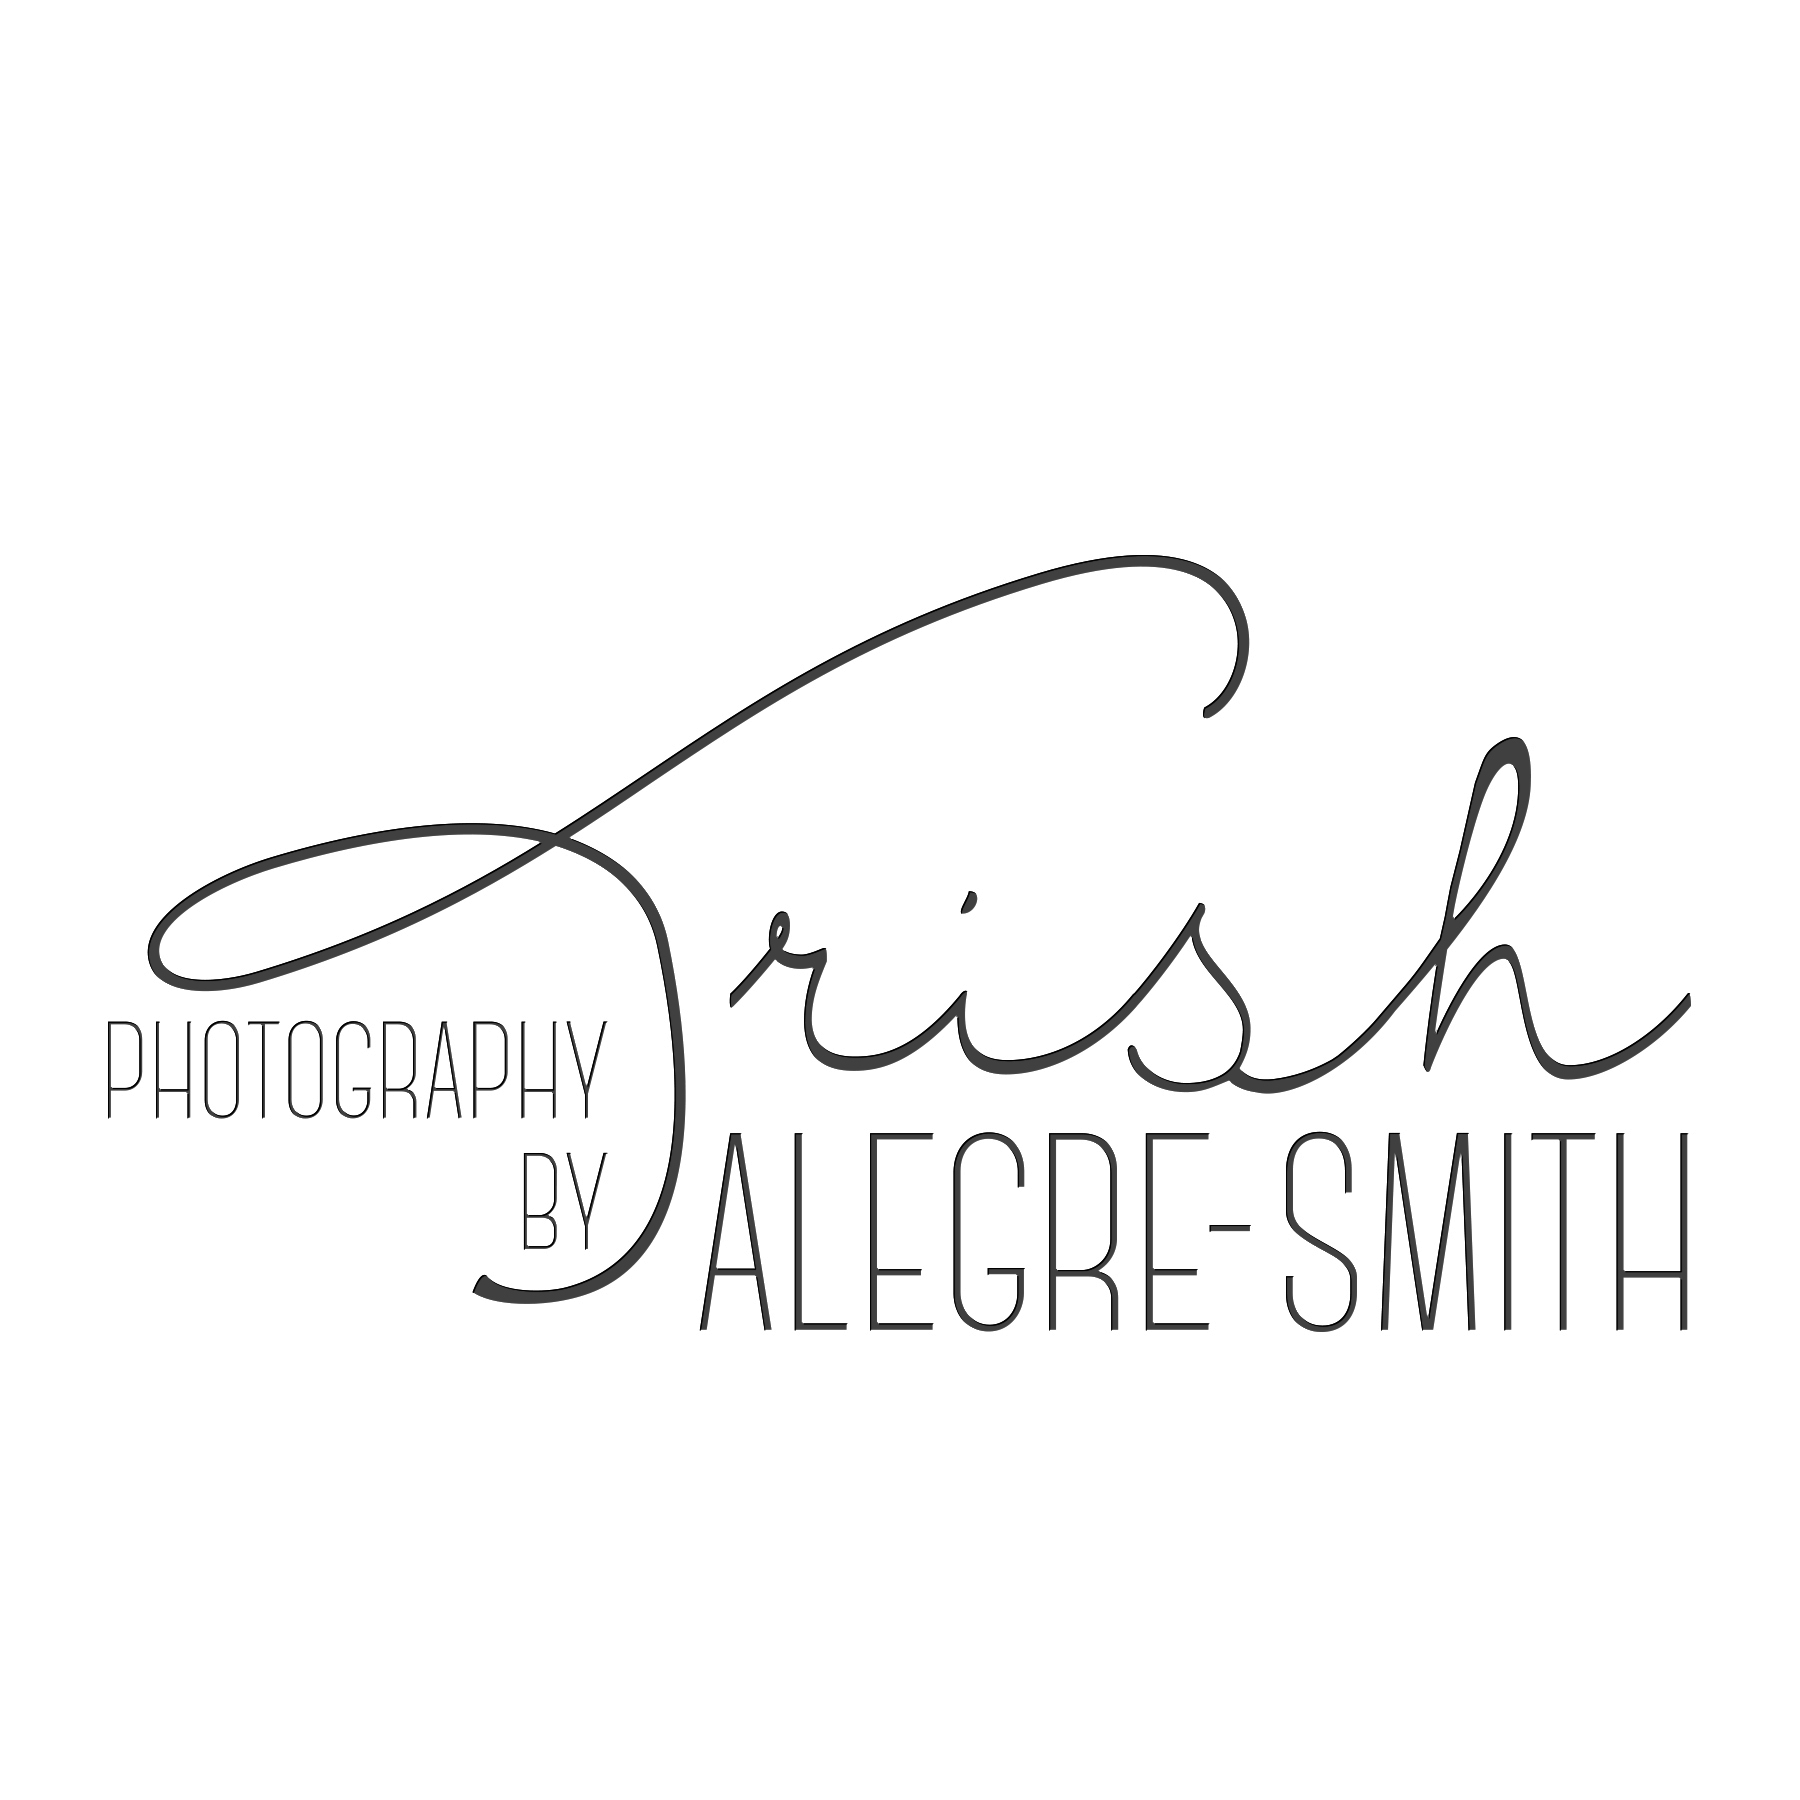 Photography by Trish Alegre-Smith